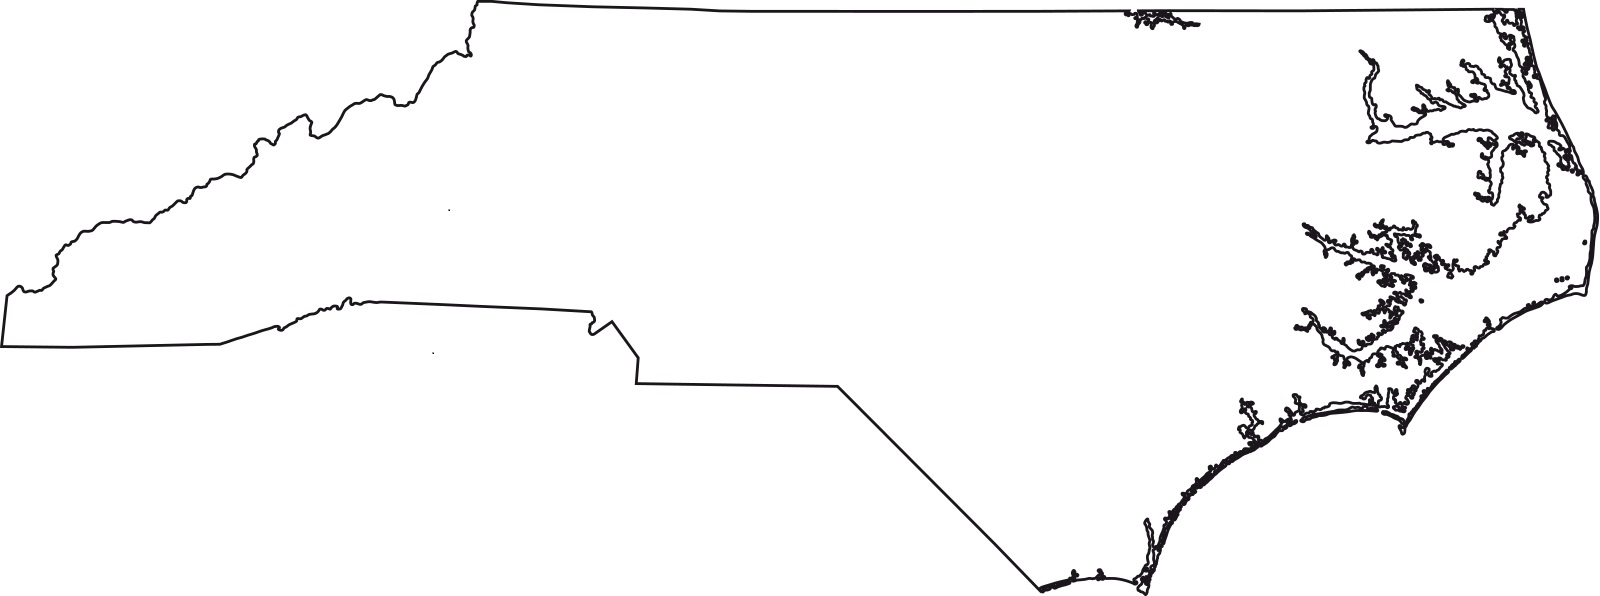 12+ Outline map of the state of North Carolina